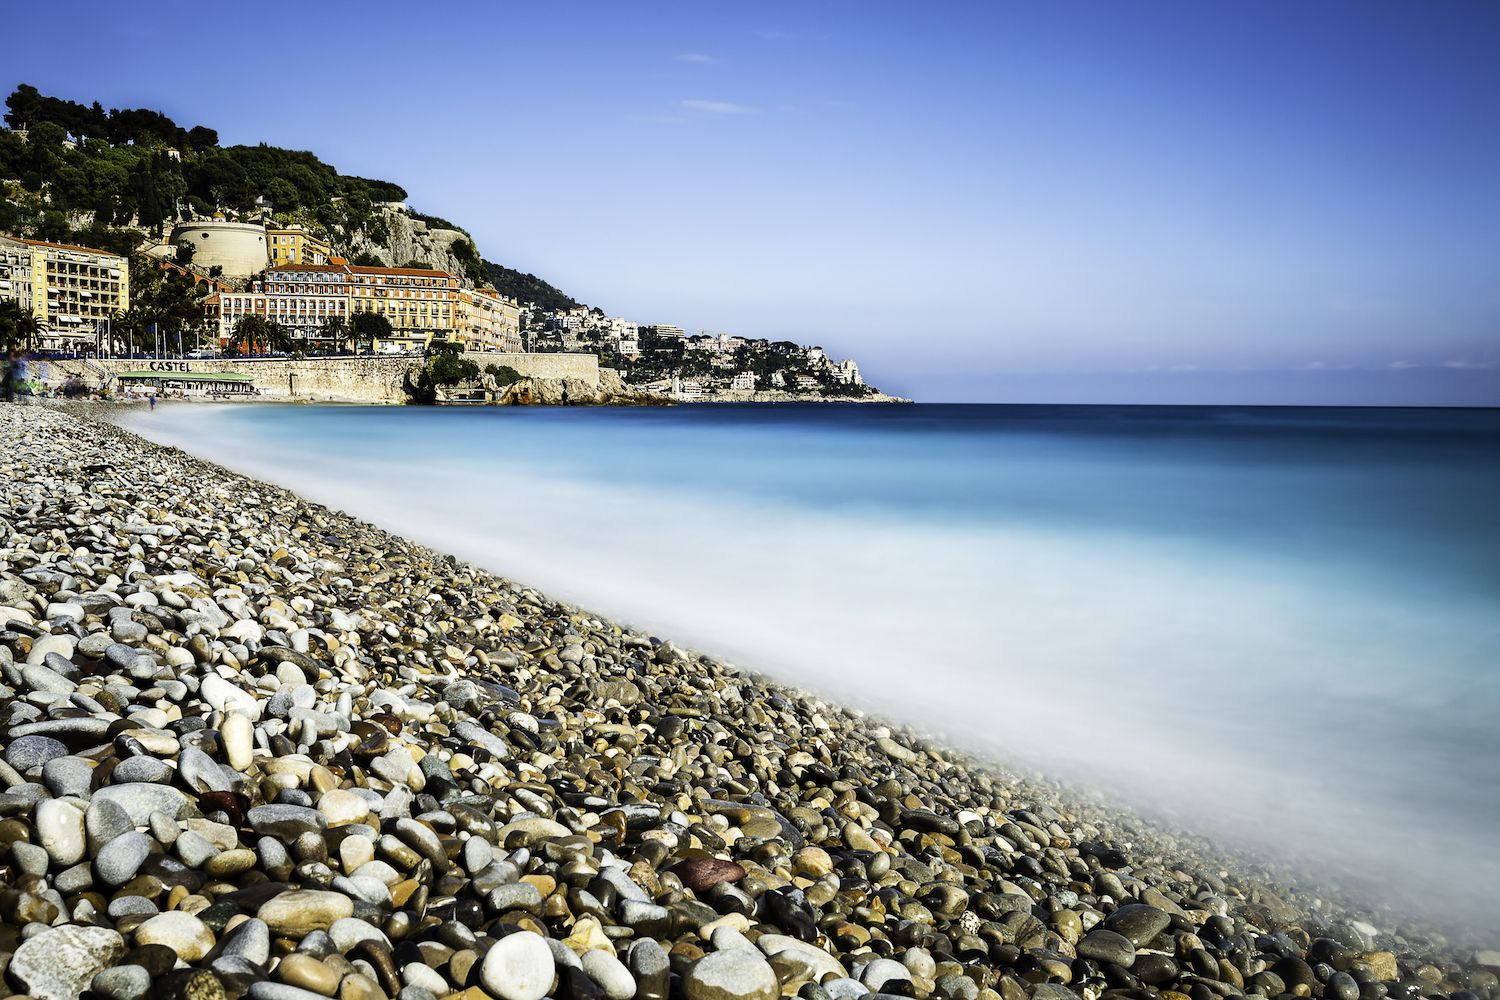 Club Nautique De Nice the 10 best beaches in nice, france